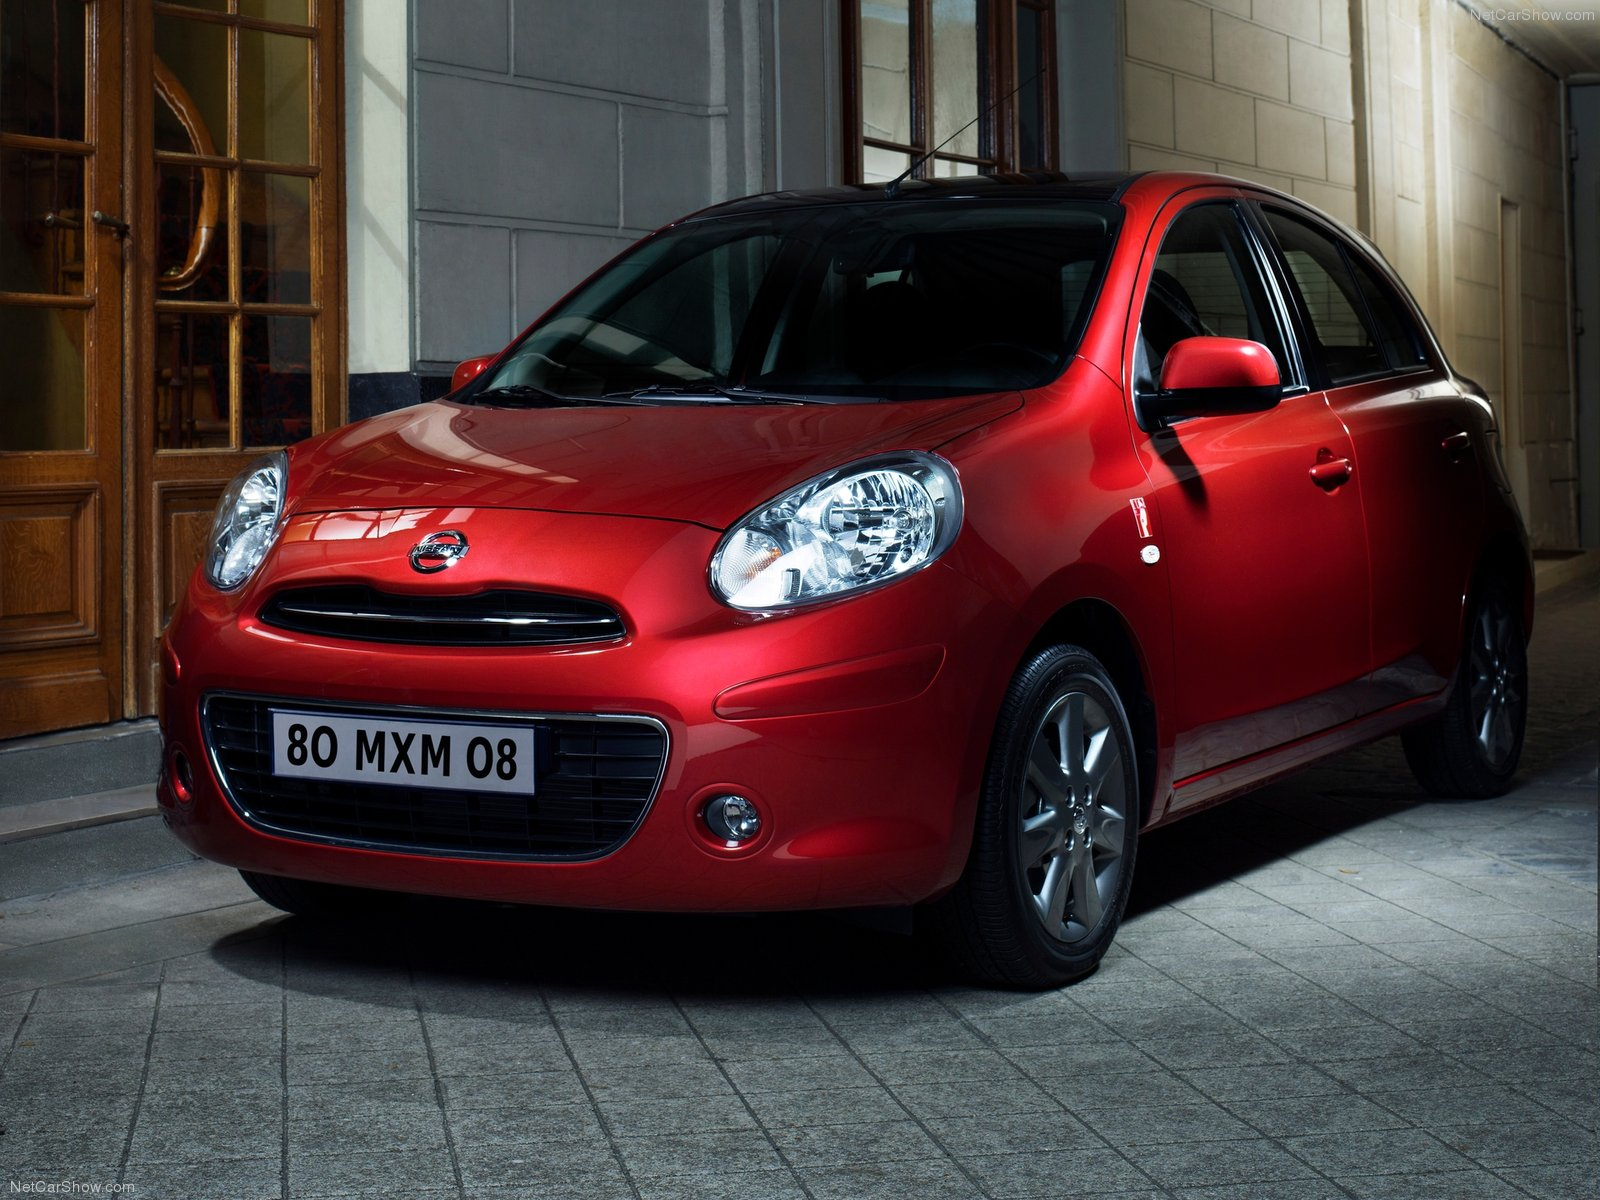 Nissan-Micra_ELLE_2012_Cheapest Cars around the world